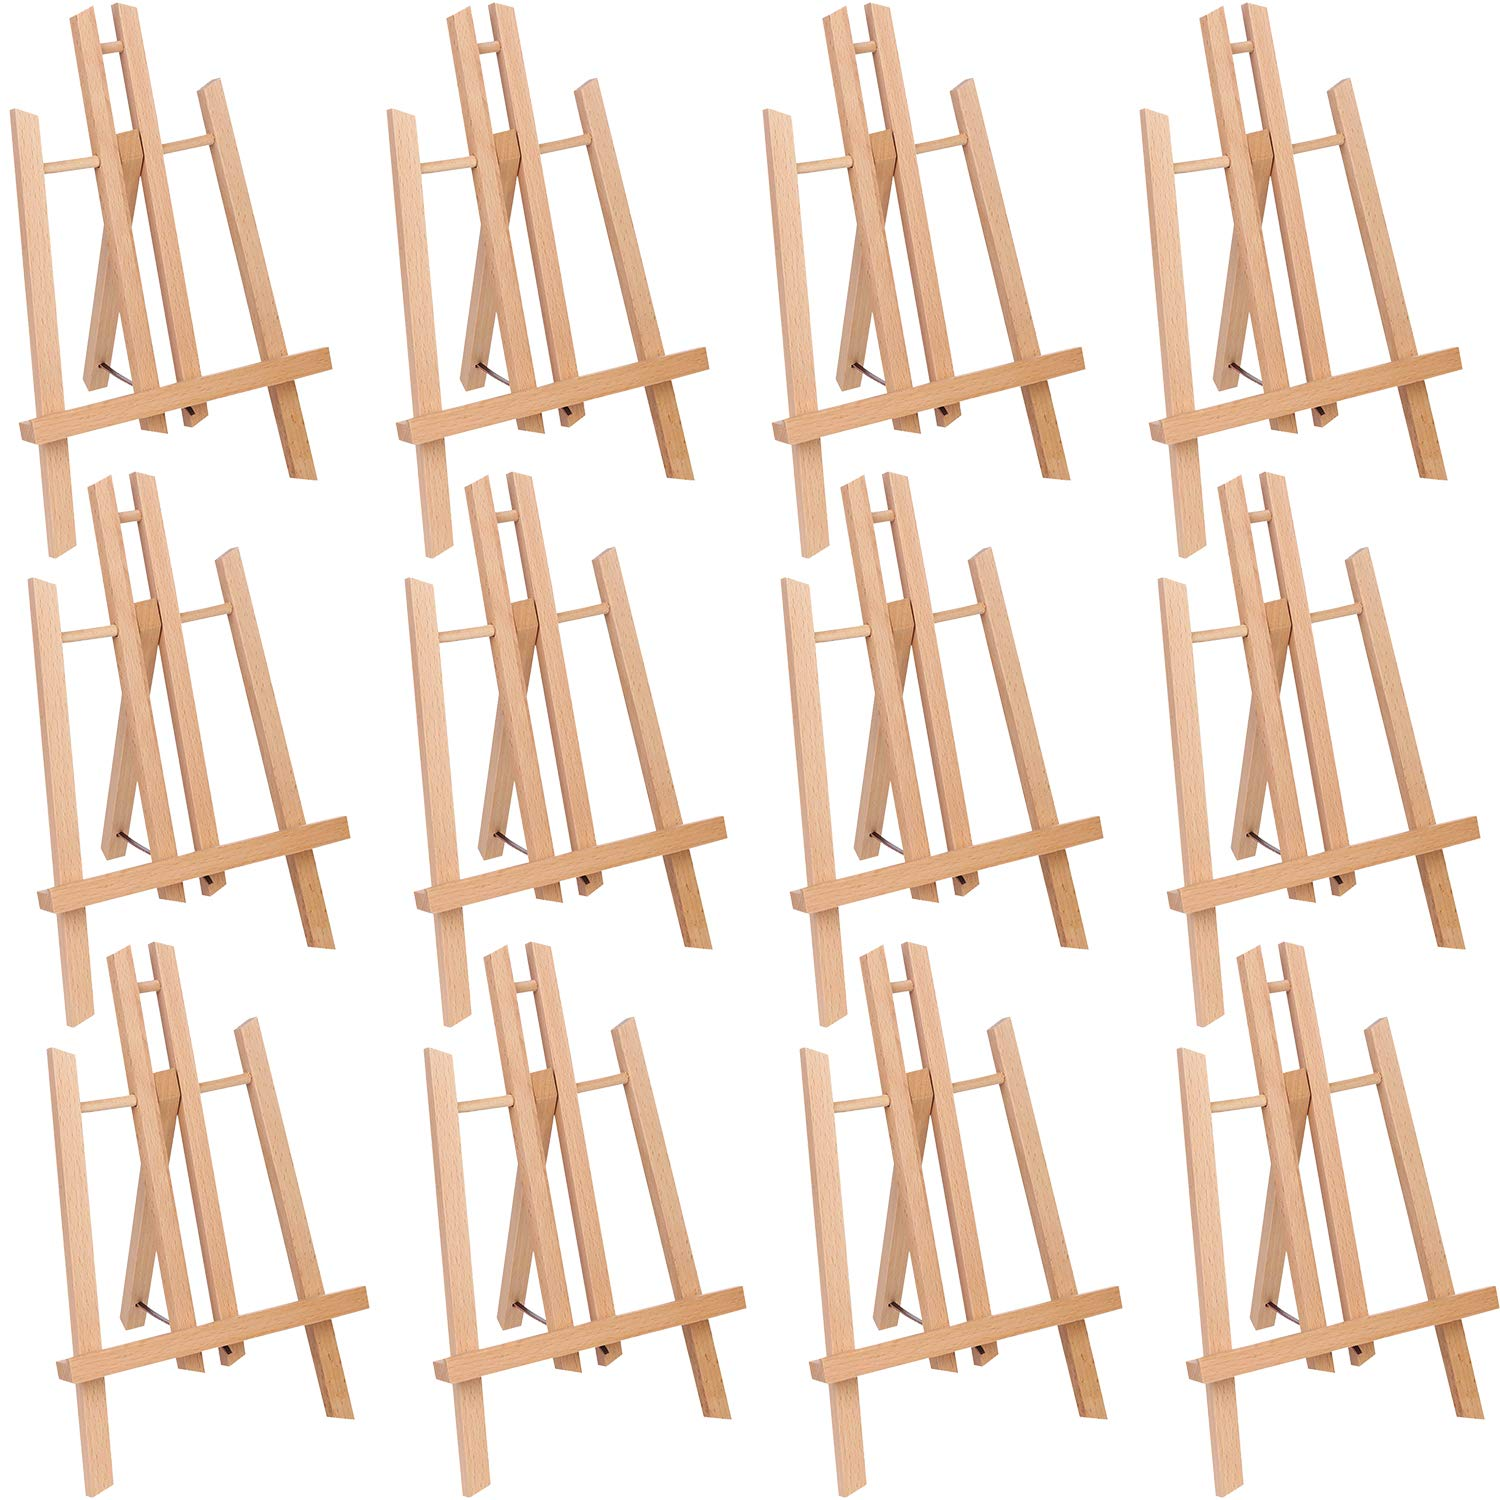 12 Pcs 11'' Tall Tabletop Easel - Small Solid Beech Wood Easel Painting Display Easel, Hold Canvas Art up to 11'' High by ATWORTH